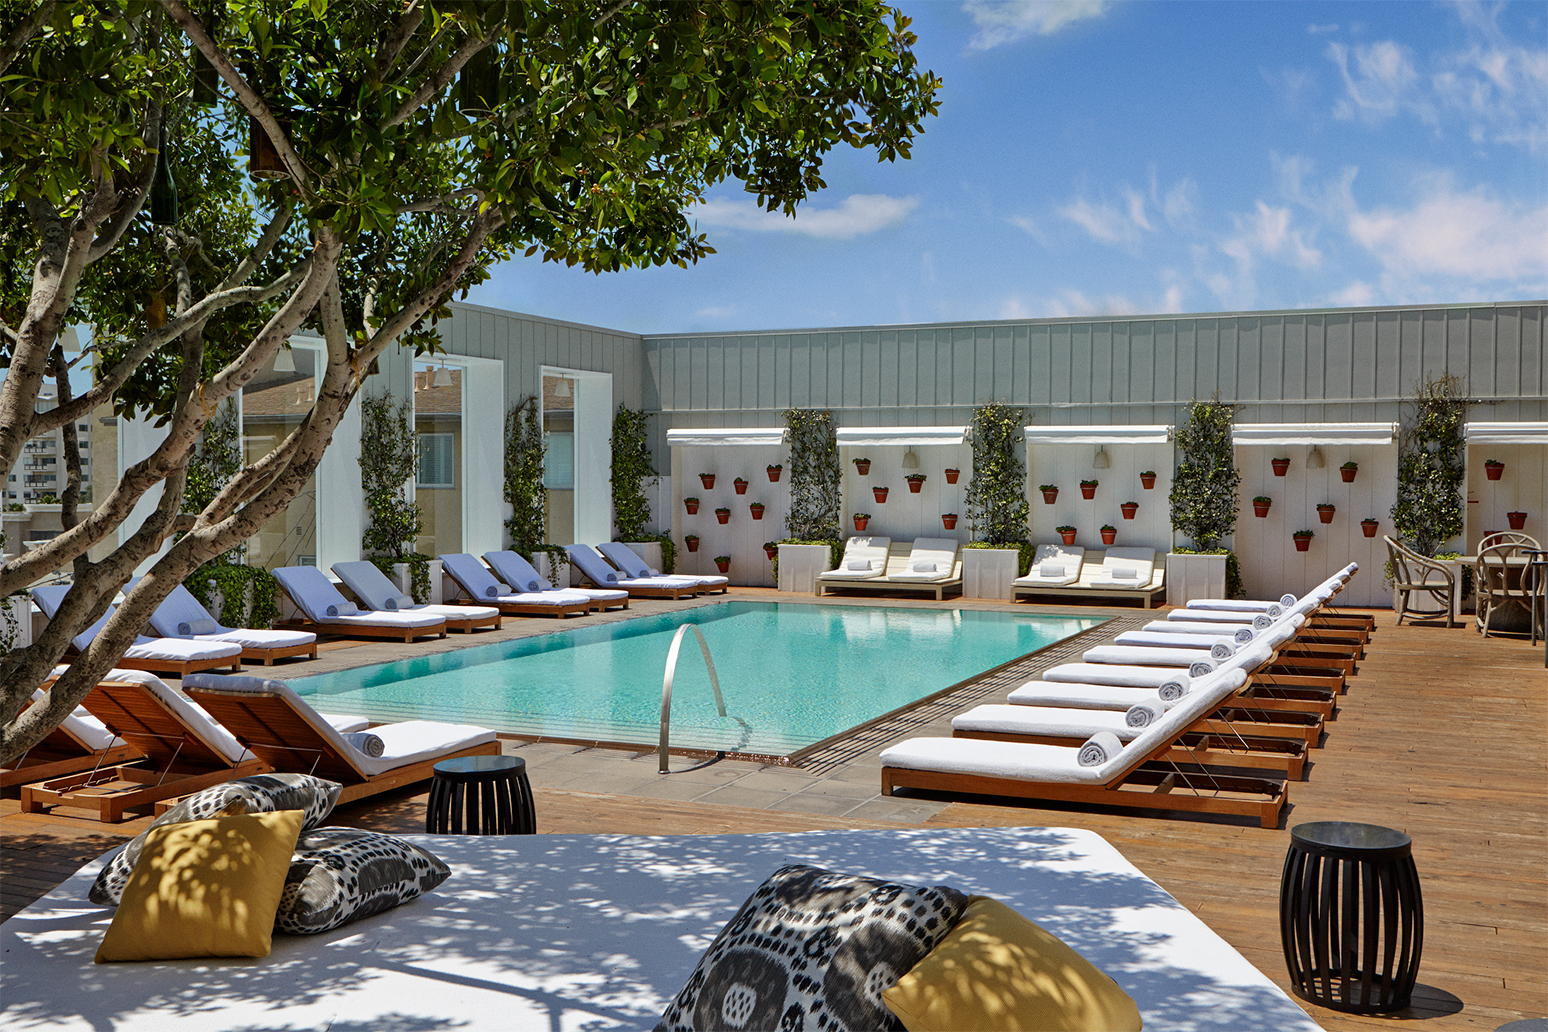 The swimming pool at Mondrian Los Angeles.